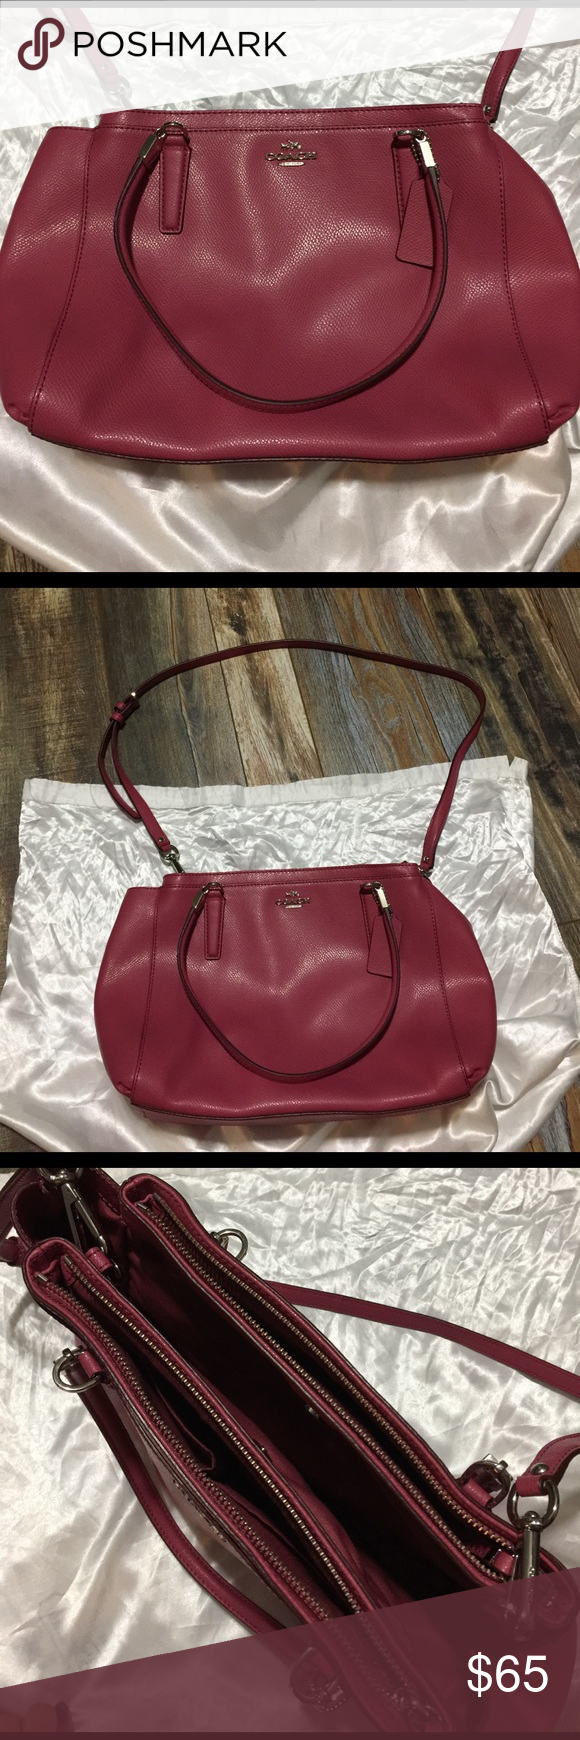 Coach pink/red satchel - optional crossbody strap Authentic coach satchel with optional crossbody strap. Coach Bags Satchels